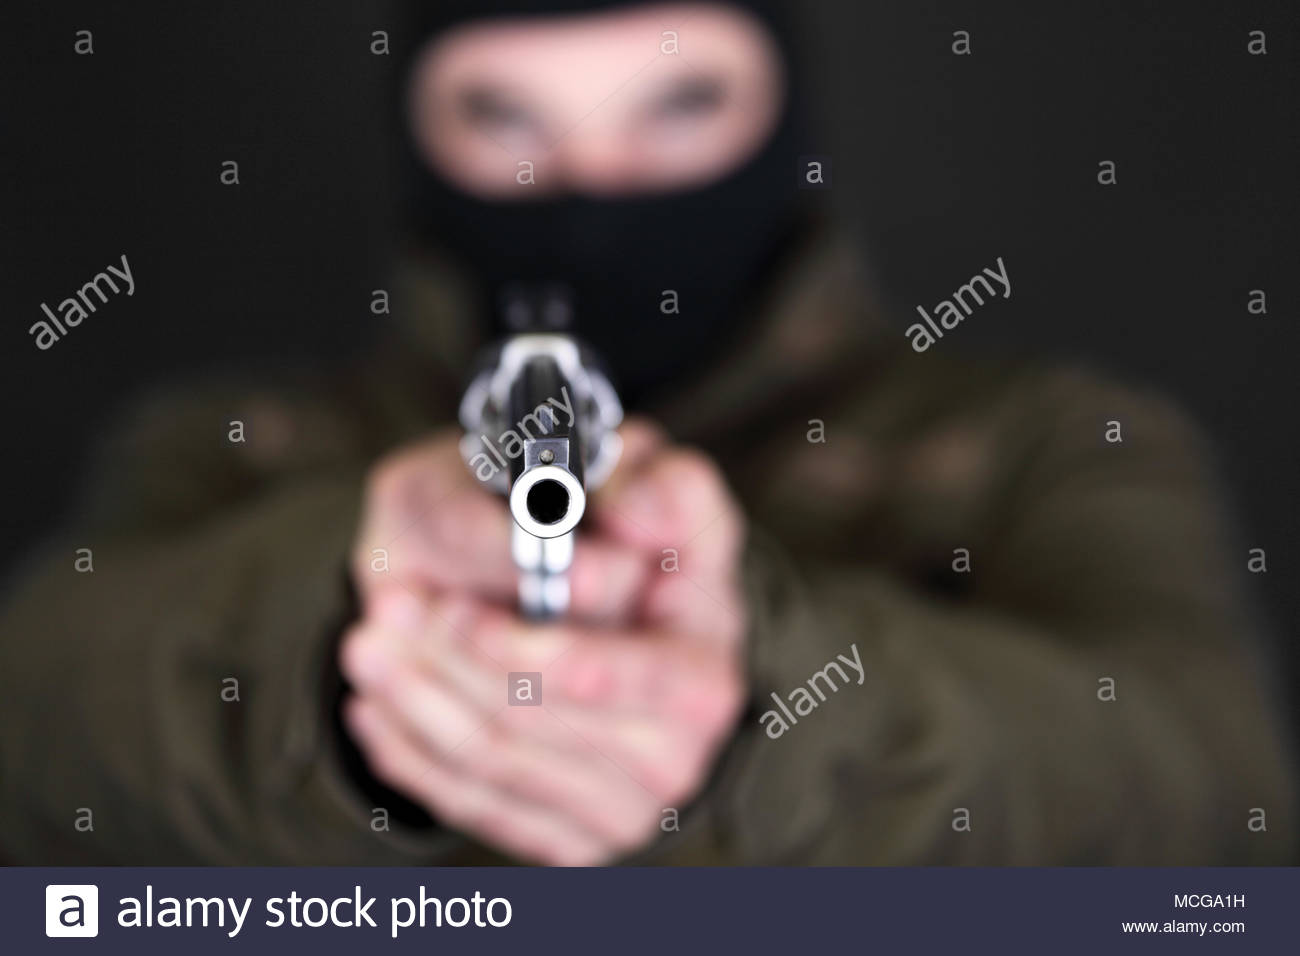 Robber with big revolver threats in front of black background - Stock Image